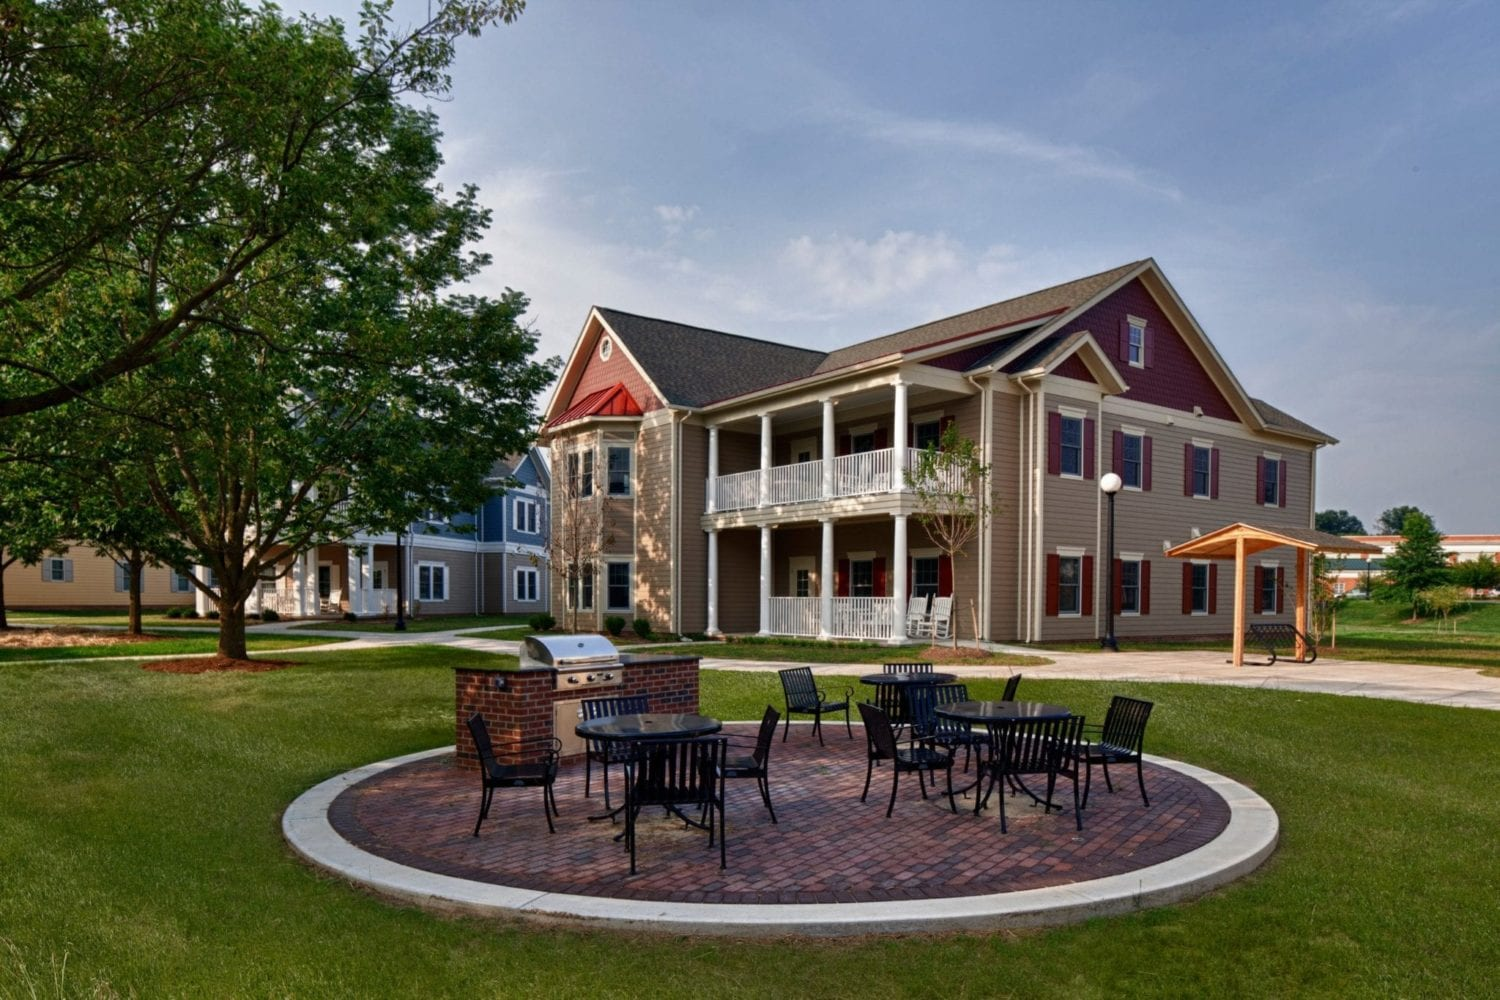 Bridgewater College Stone Village Housing Photo